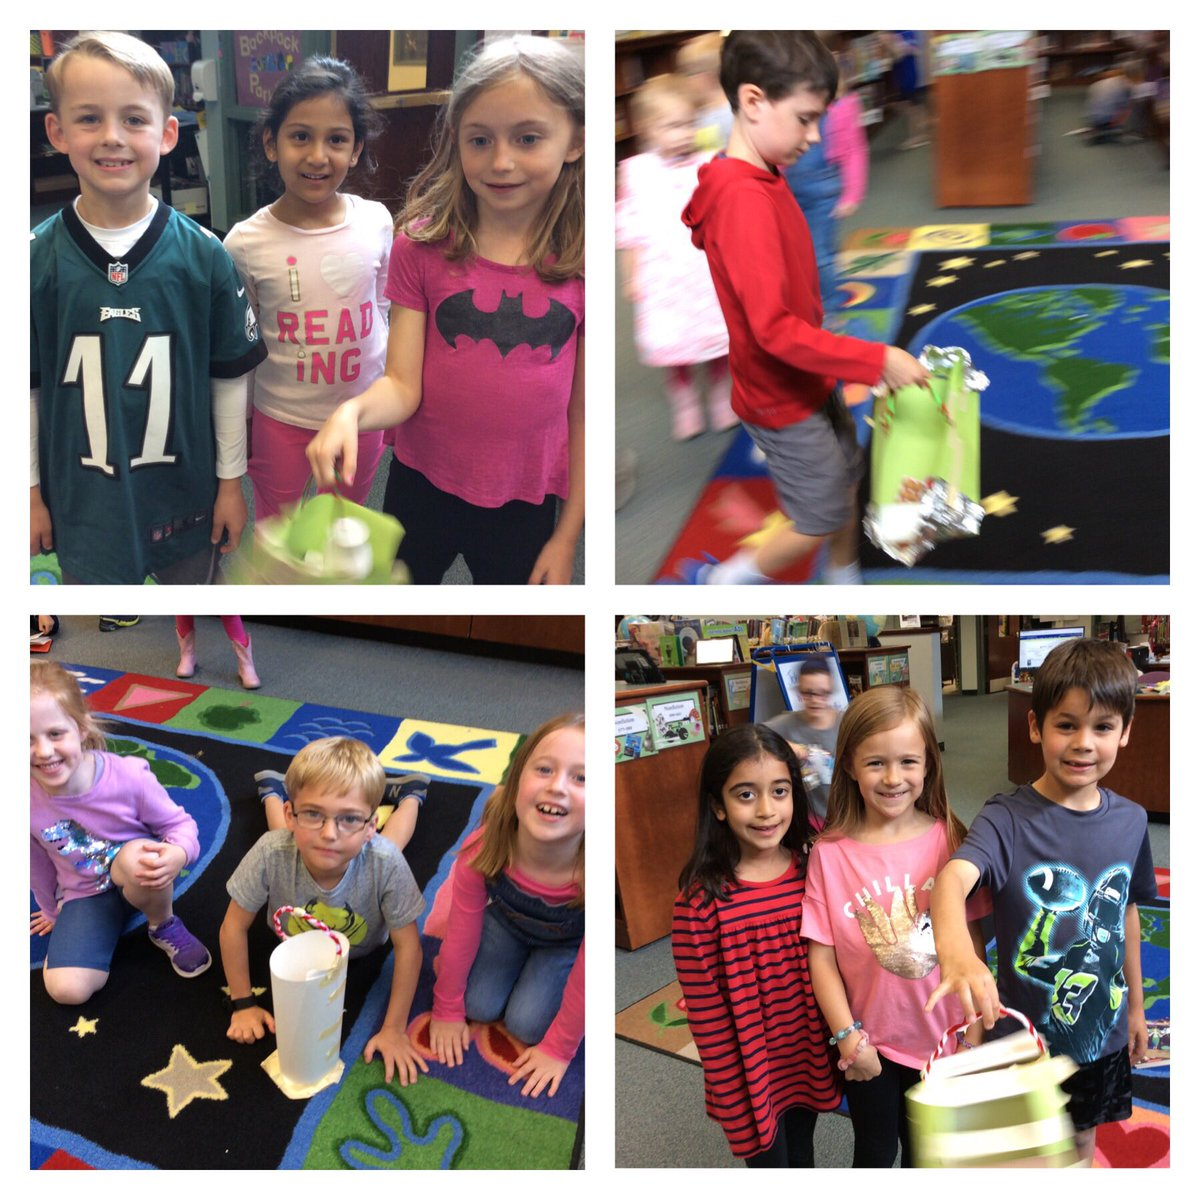 Today, we tested out the baskets we made for Little Red to take to Grandma's house. They worked beautifully! Great job by the Jolly Rogers and <a target='_blank' href='http://twitter.com/whitleystarfish'>@whitleystarfish</a> <a target='_blank' href='http://search.twitter.com/search?q=designthinking'><a target='_blank' href='https://twitter.com/hashtag/designthinking?src=hash'>#designthinking</a></a> <a target='_blank' href='http://twitter.com/APS_STEM'>@APS_STEM</a> <a target='_blank' href='http://twitter.com/NTMKnightsAPS'>@NTMKnightsAPS</a> <a target='_blank' href='http://twitter.com/NottinghamPTA'>@NottinghamPTA</a> <a target='_blank' href='http://twitter.com/APSLibrarians'>@APSLibrarians</a> <a target='_blank' href='https://t.co/O2KDqMdDNn'>https://t.co/O2KDqMdDNn</a>